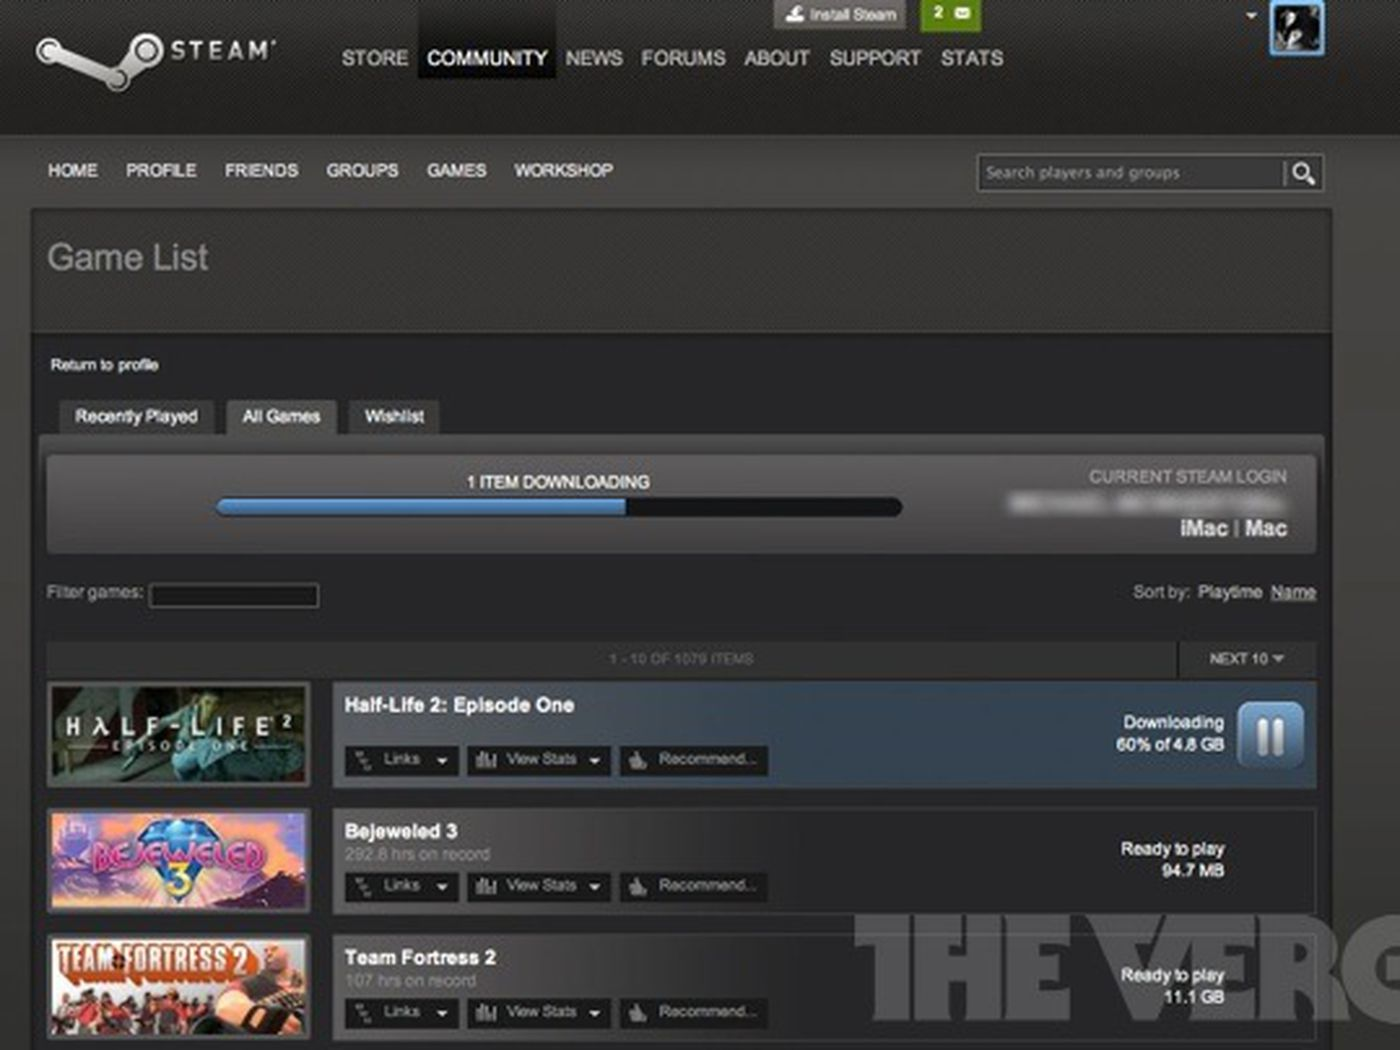 Valve takes remote downloads for Steam out of beta - The Verge